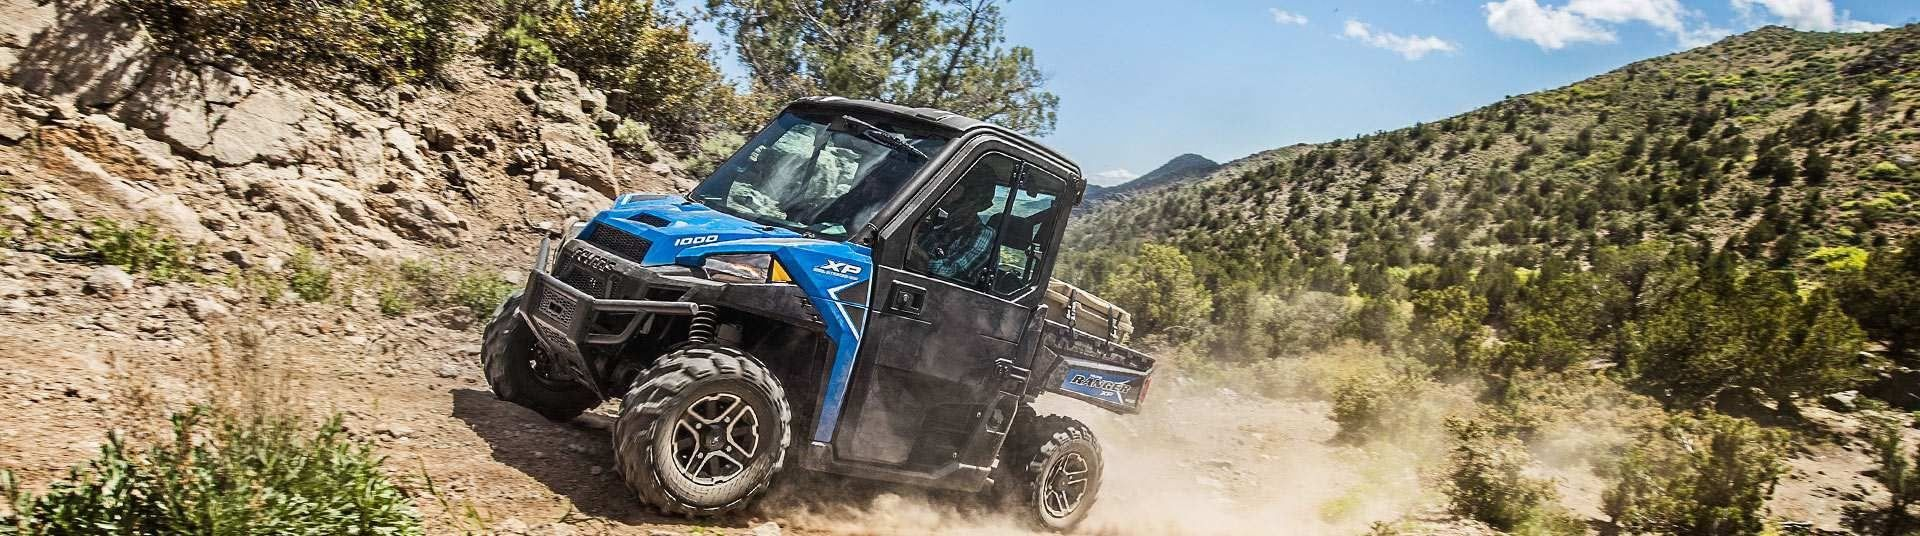 Motorsports Vehicles for Sale | Boats, ATVs, UTVs